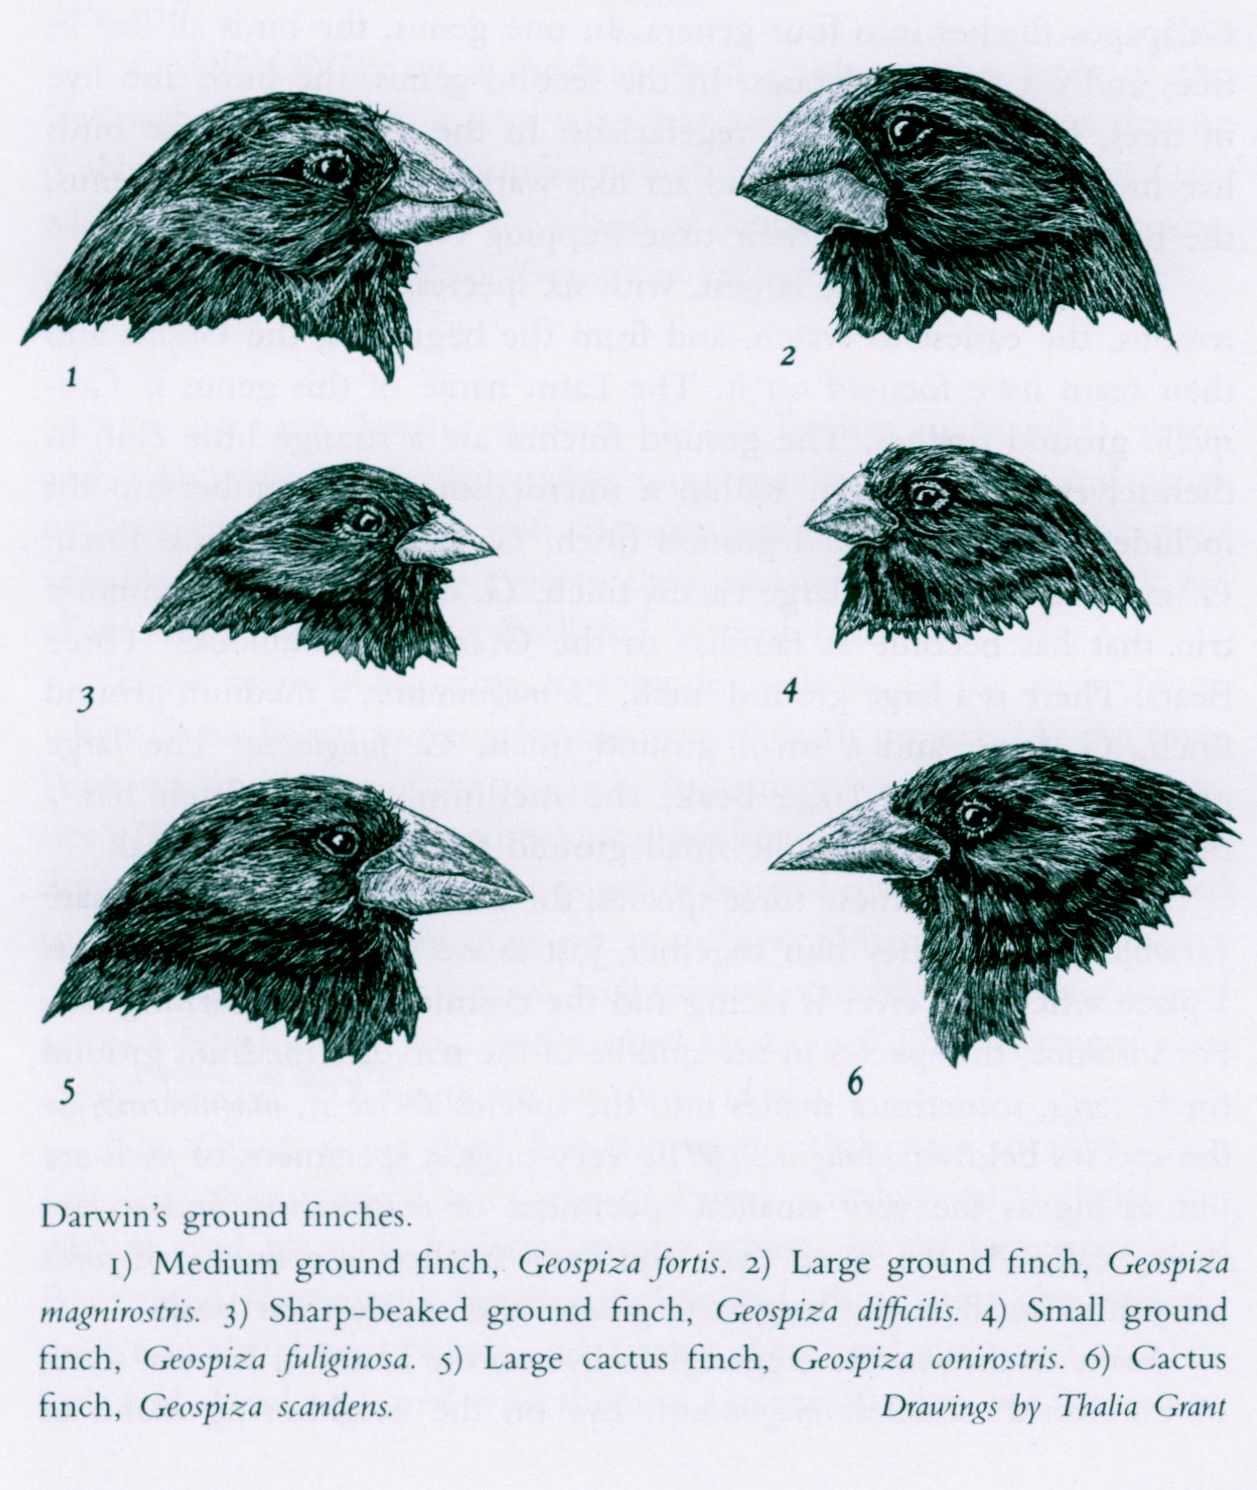 The Galapagos Finches Prime Example Of Evolution